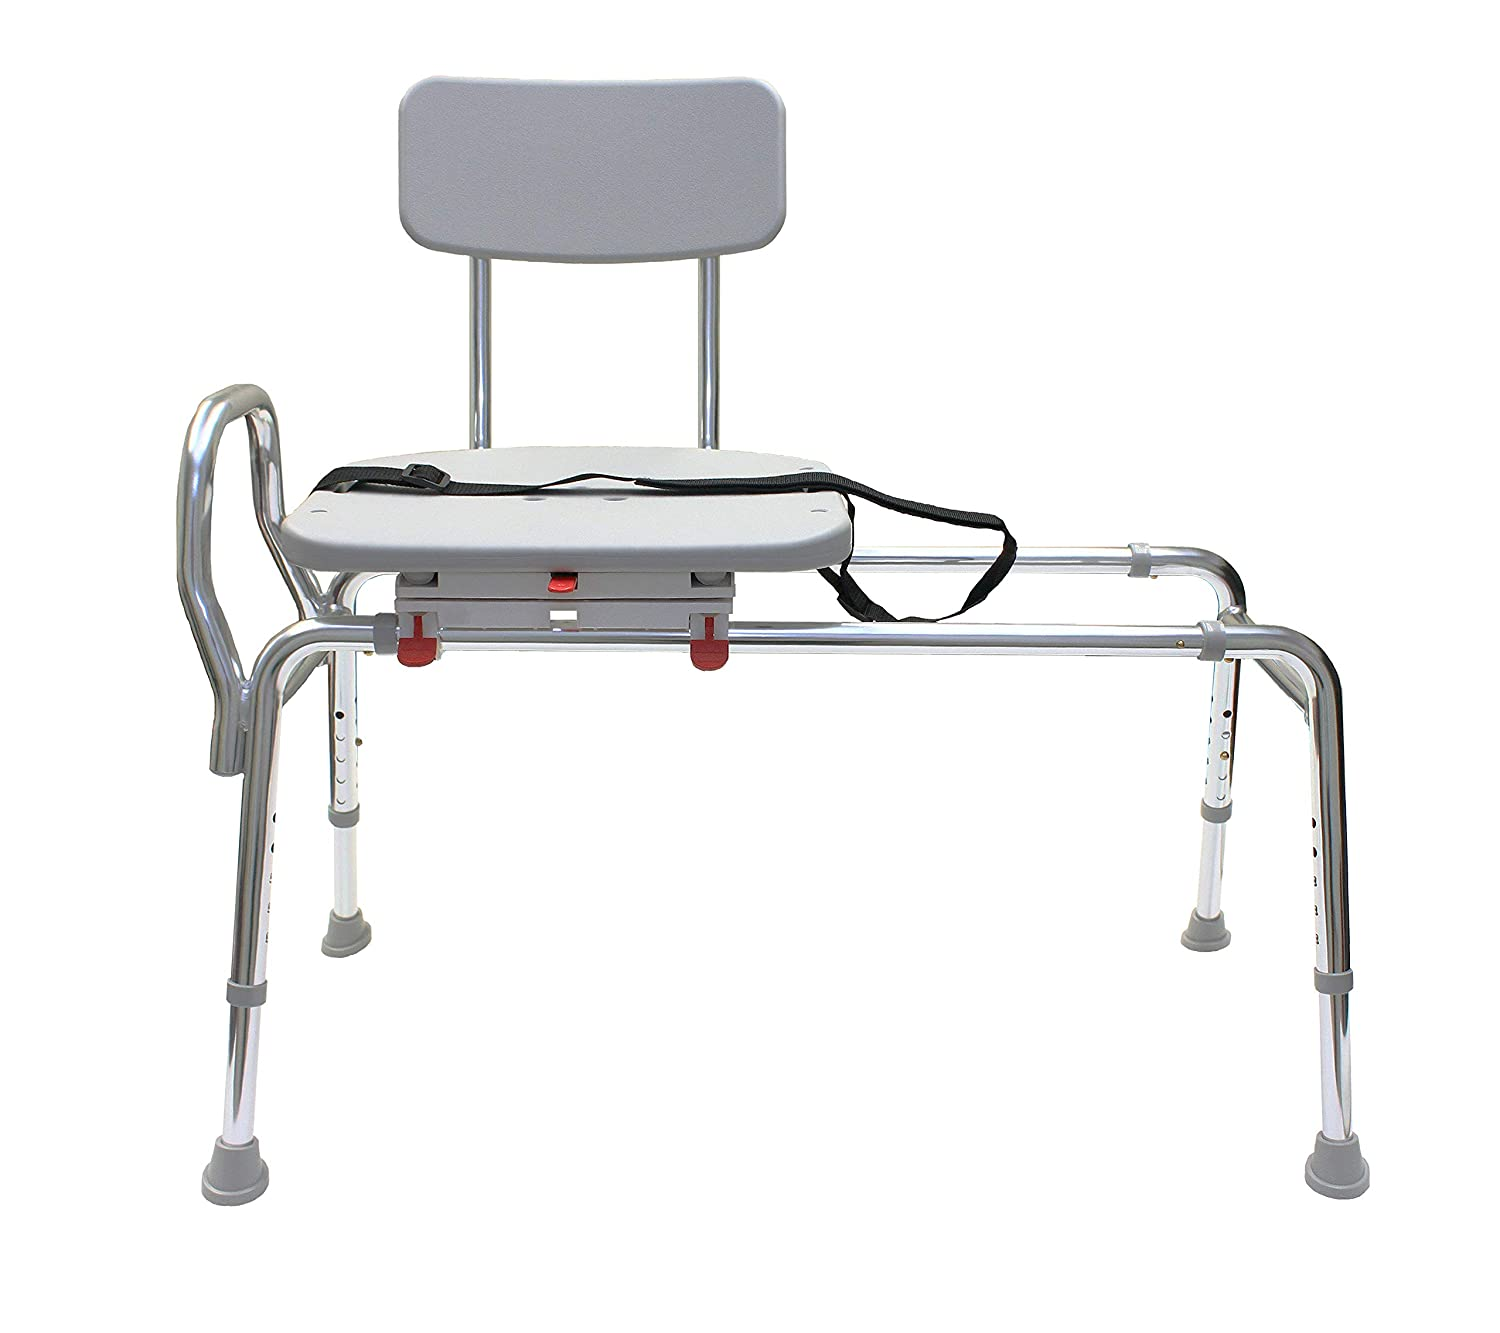 Miraculous Swiveling And Sliding Bathtub Transfer Bench And Shower Chair Reg 77662 Swiveling And Sliding System Multiple Safety Features Tool Less Machost Co Dining Chair Design Ideas Machostcouk